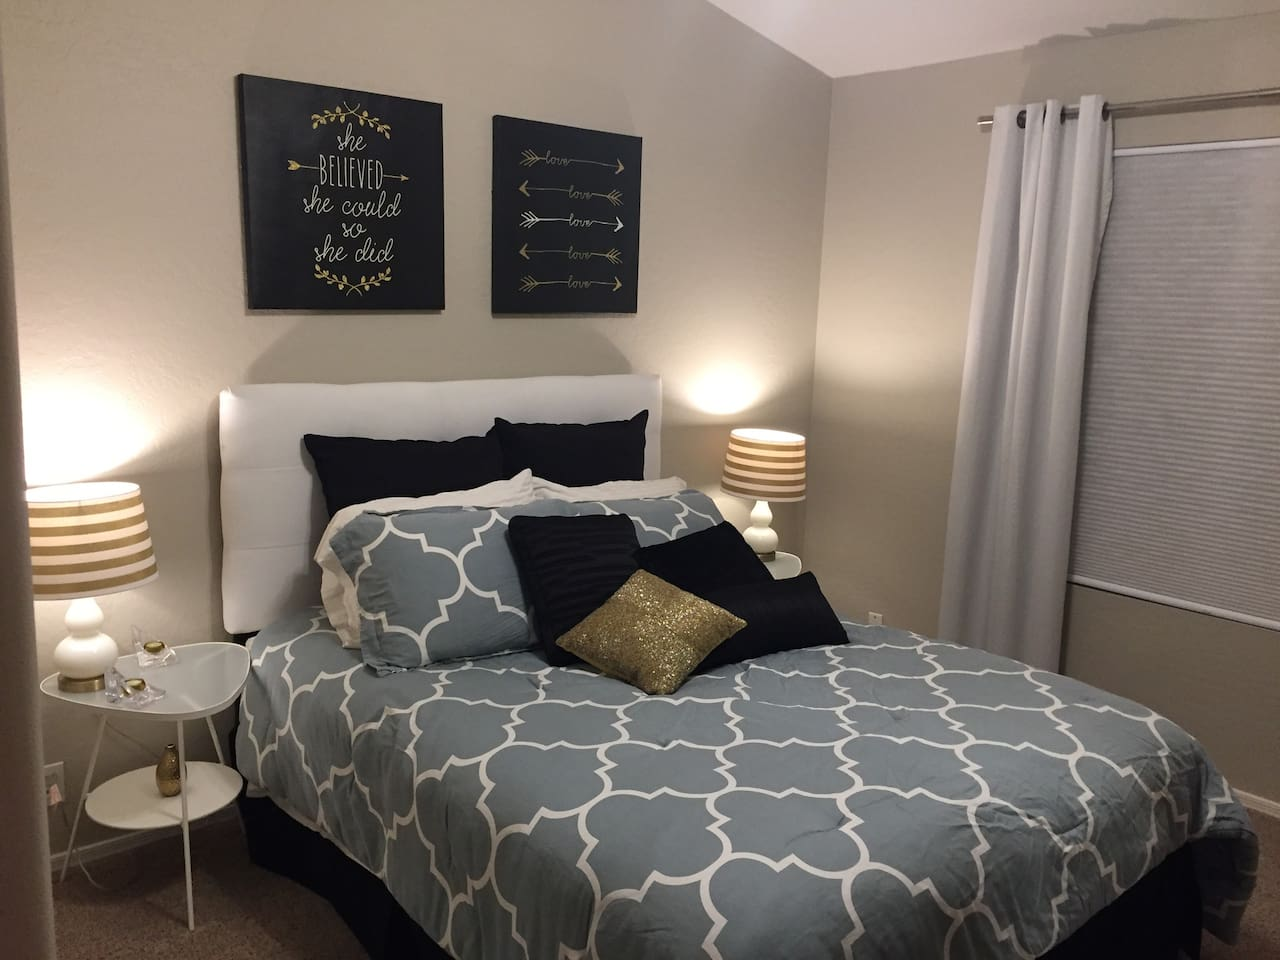 Luxurious bedroom with a queen size bed, dresser, large closet with storage, room darkening drapes, ceiling light with fan, lockable door and your private bathroom right across the hall.